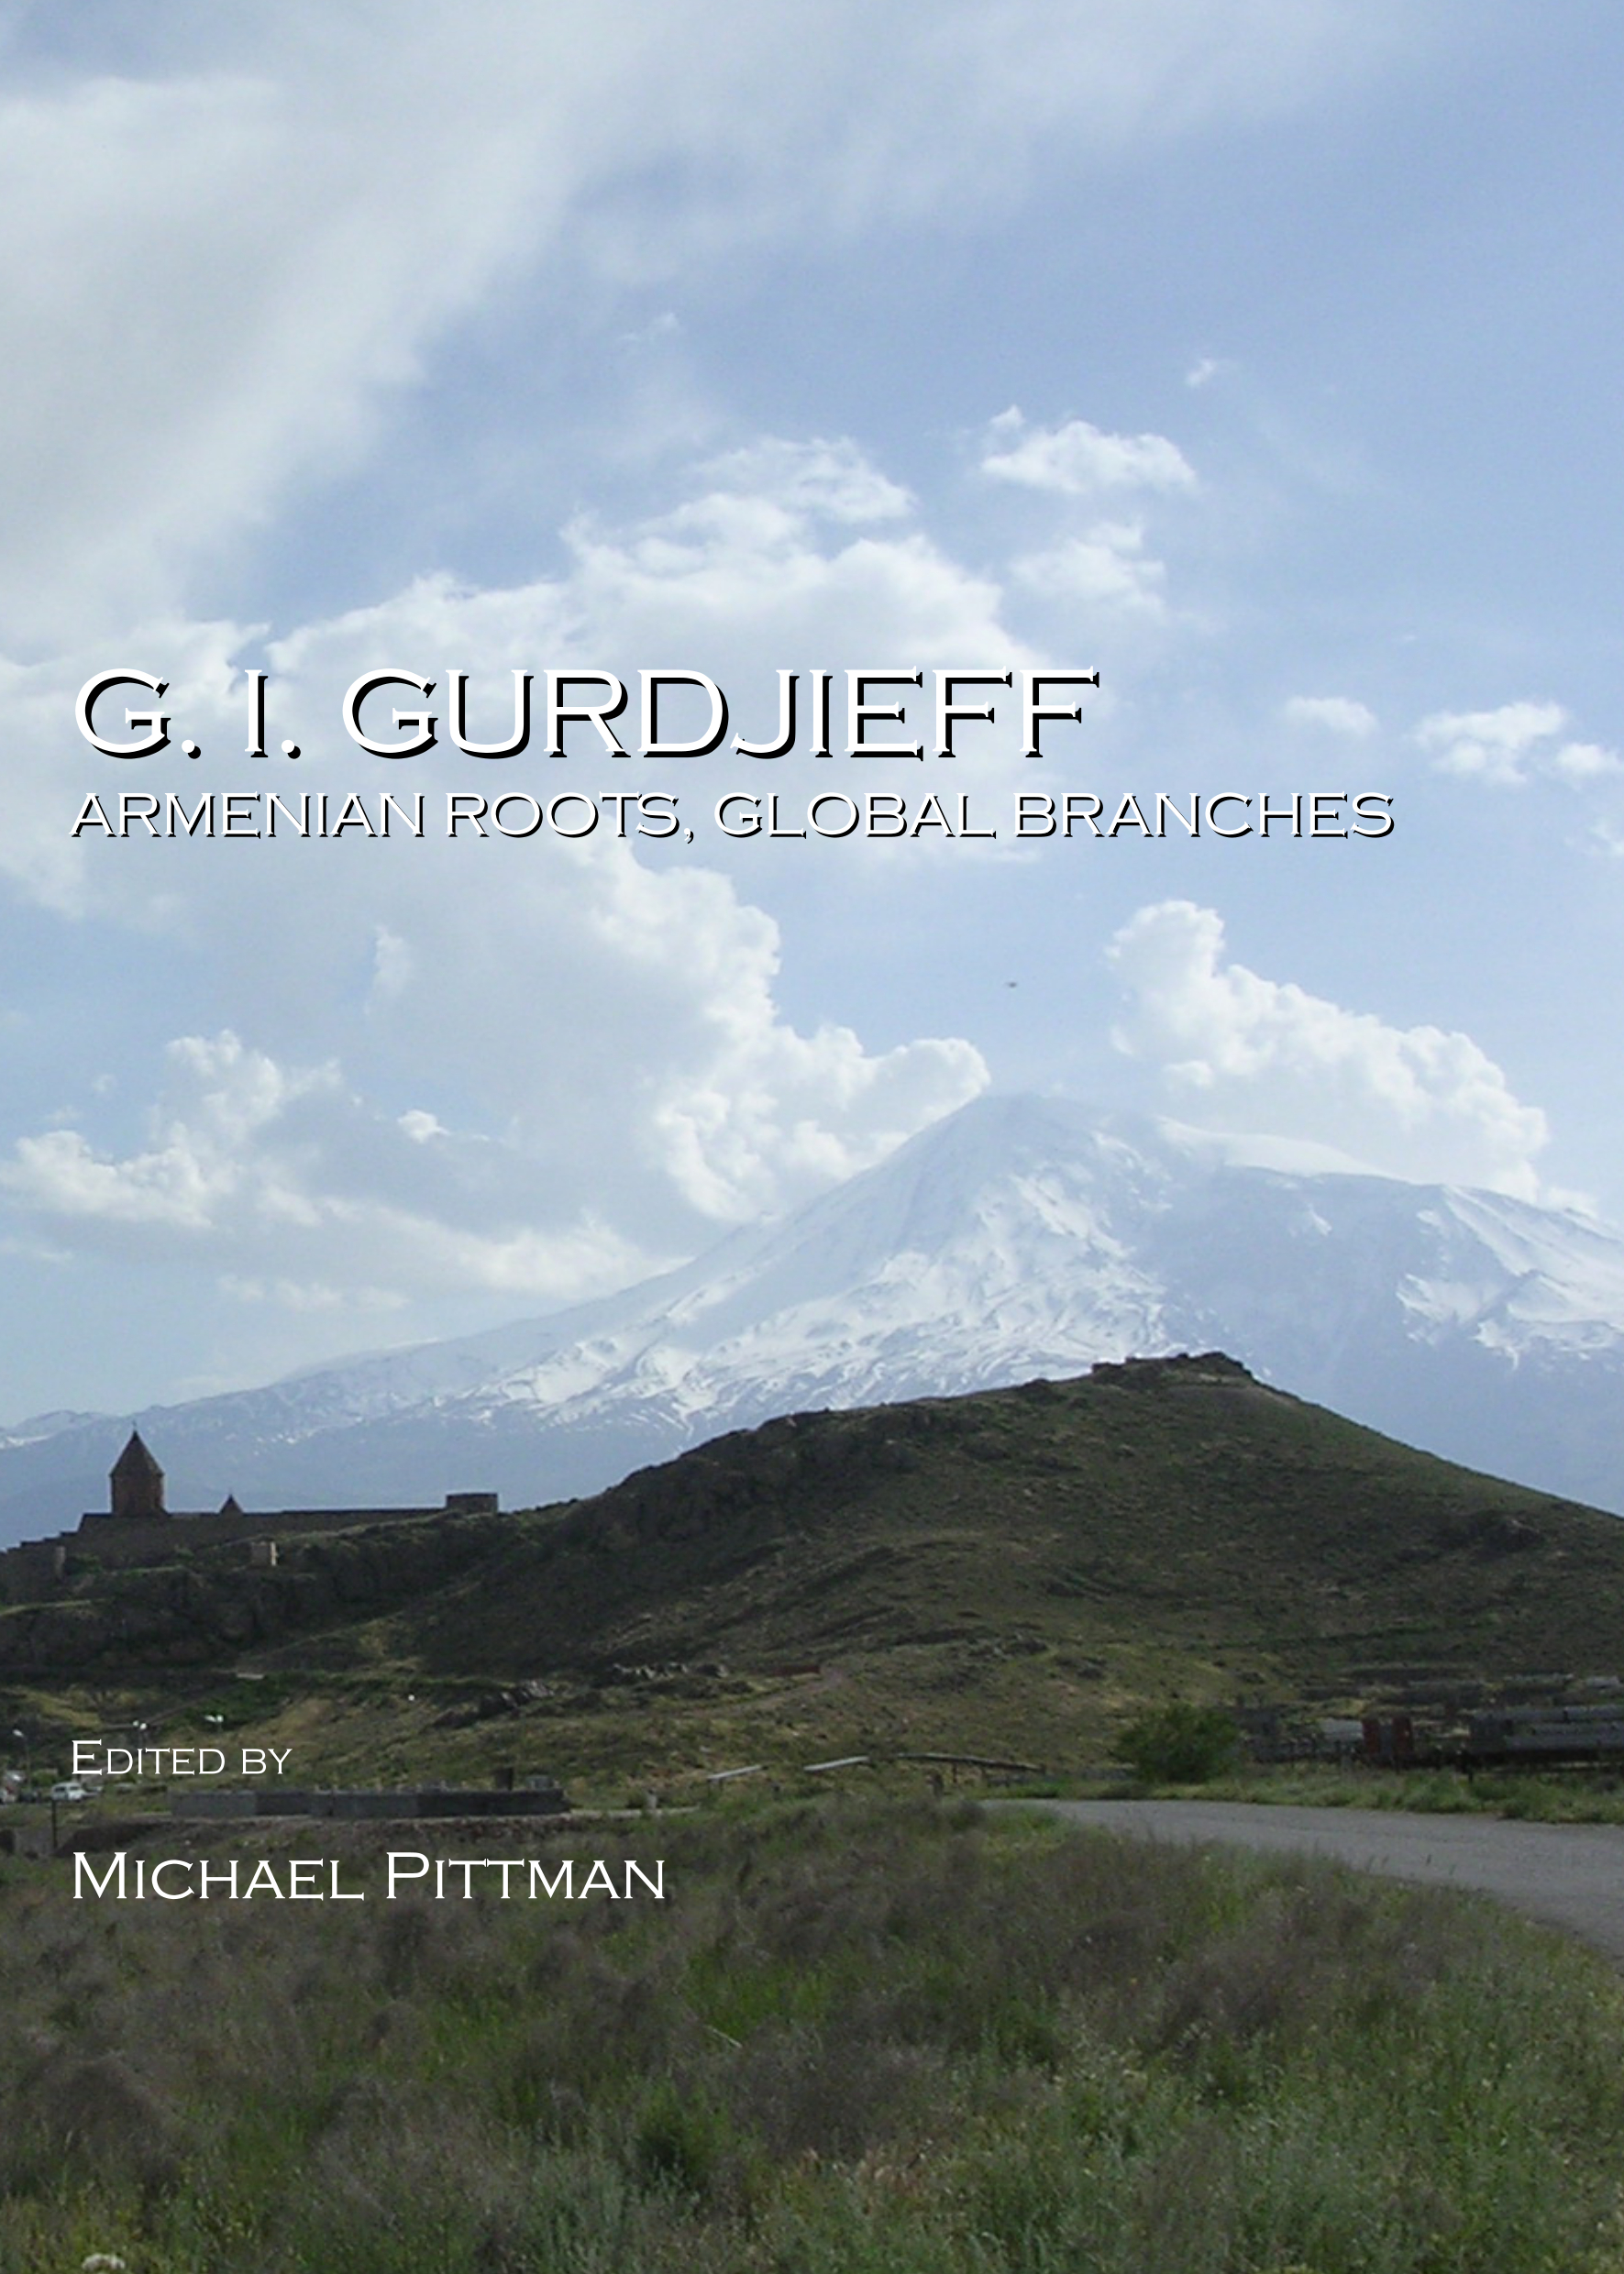 G. I. Gurdjieff: Armenian Roots, Global Branches